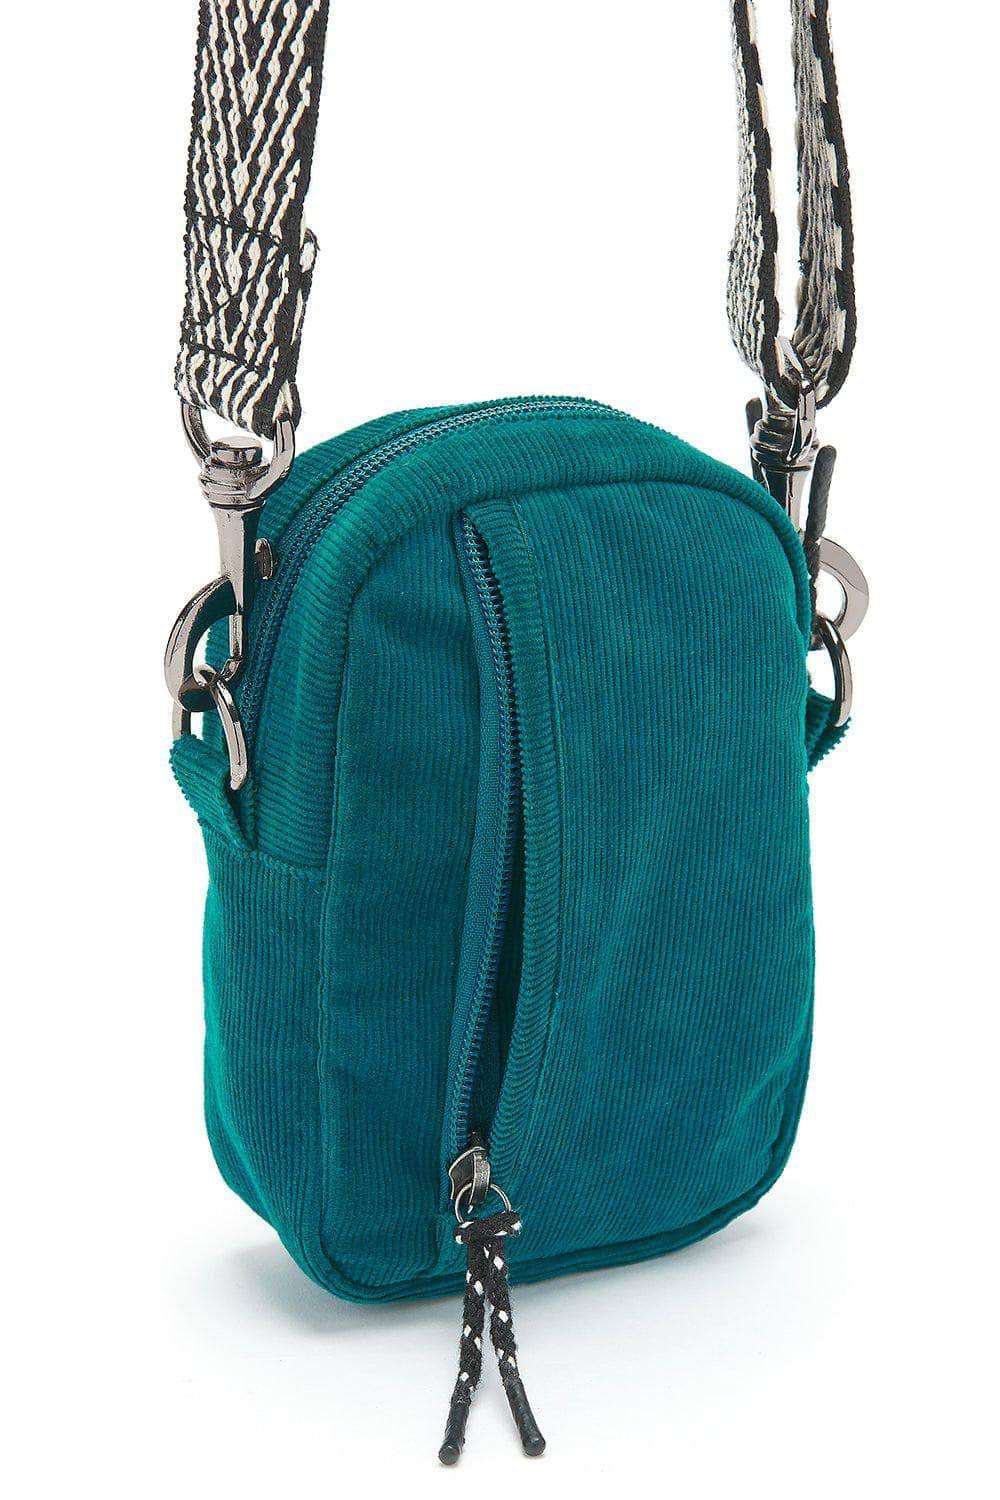 Lucy & Yak Bag 'Brady' Mini Cross Body Bag in Teal